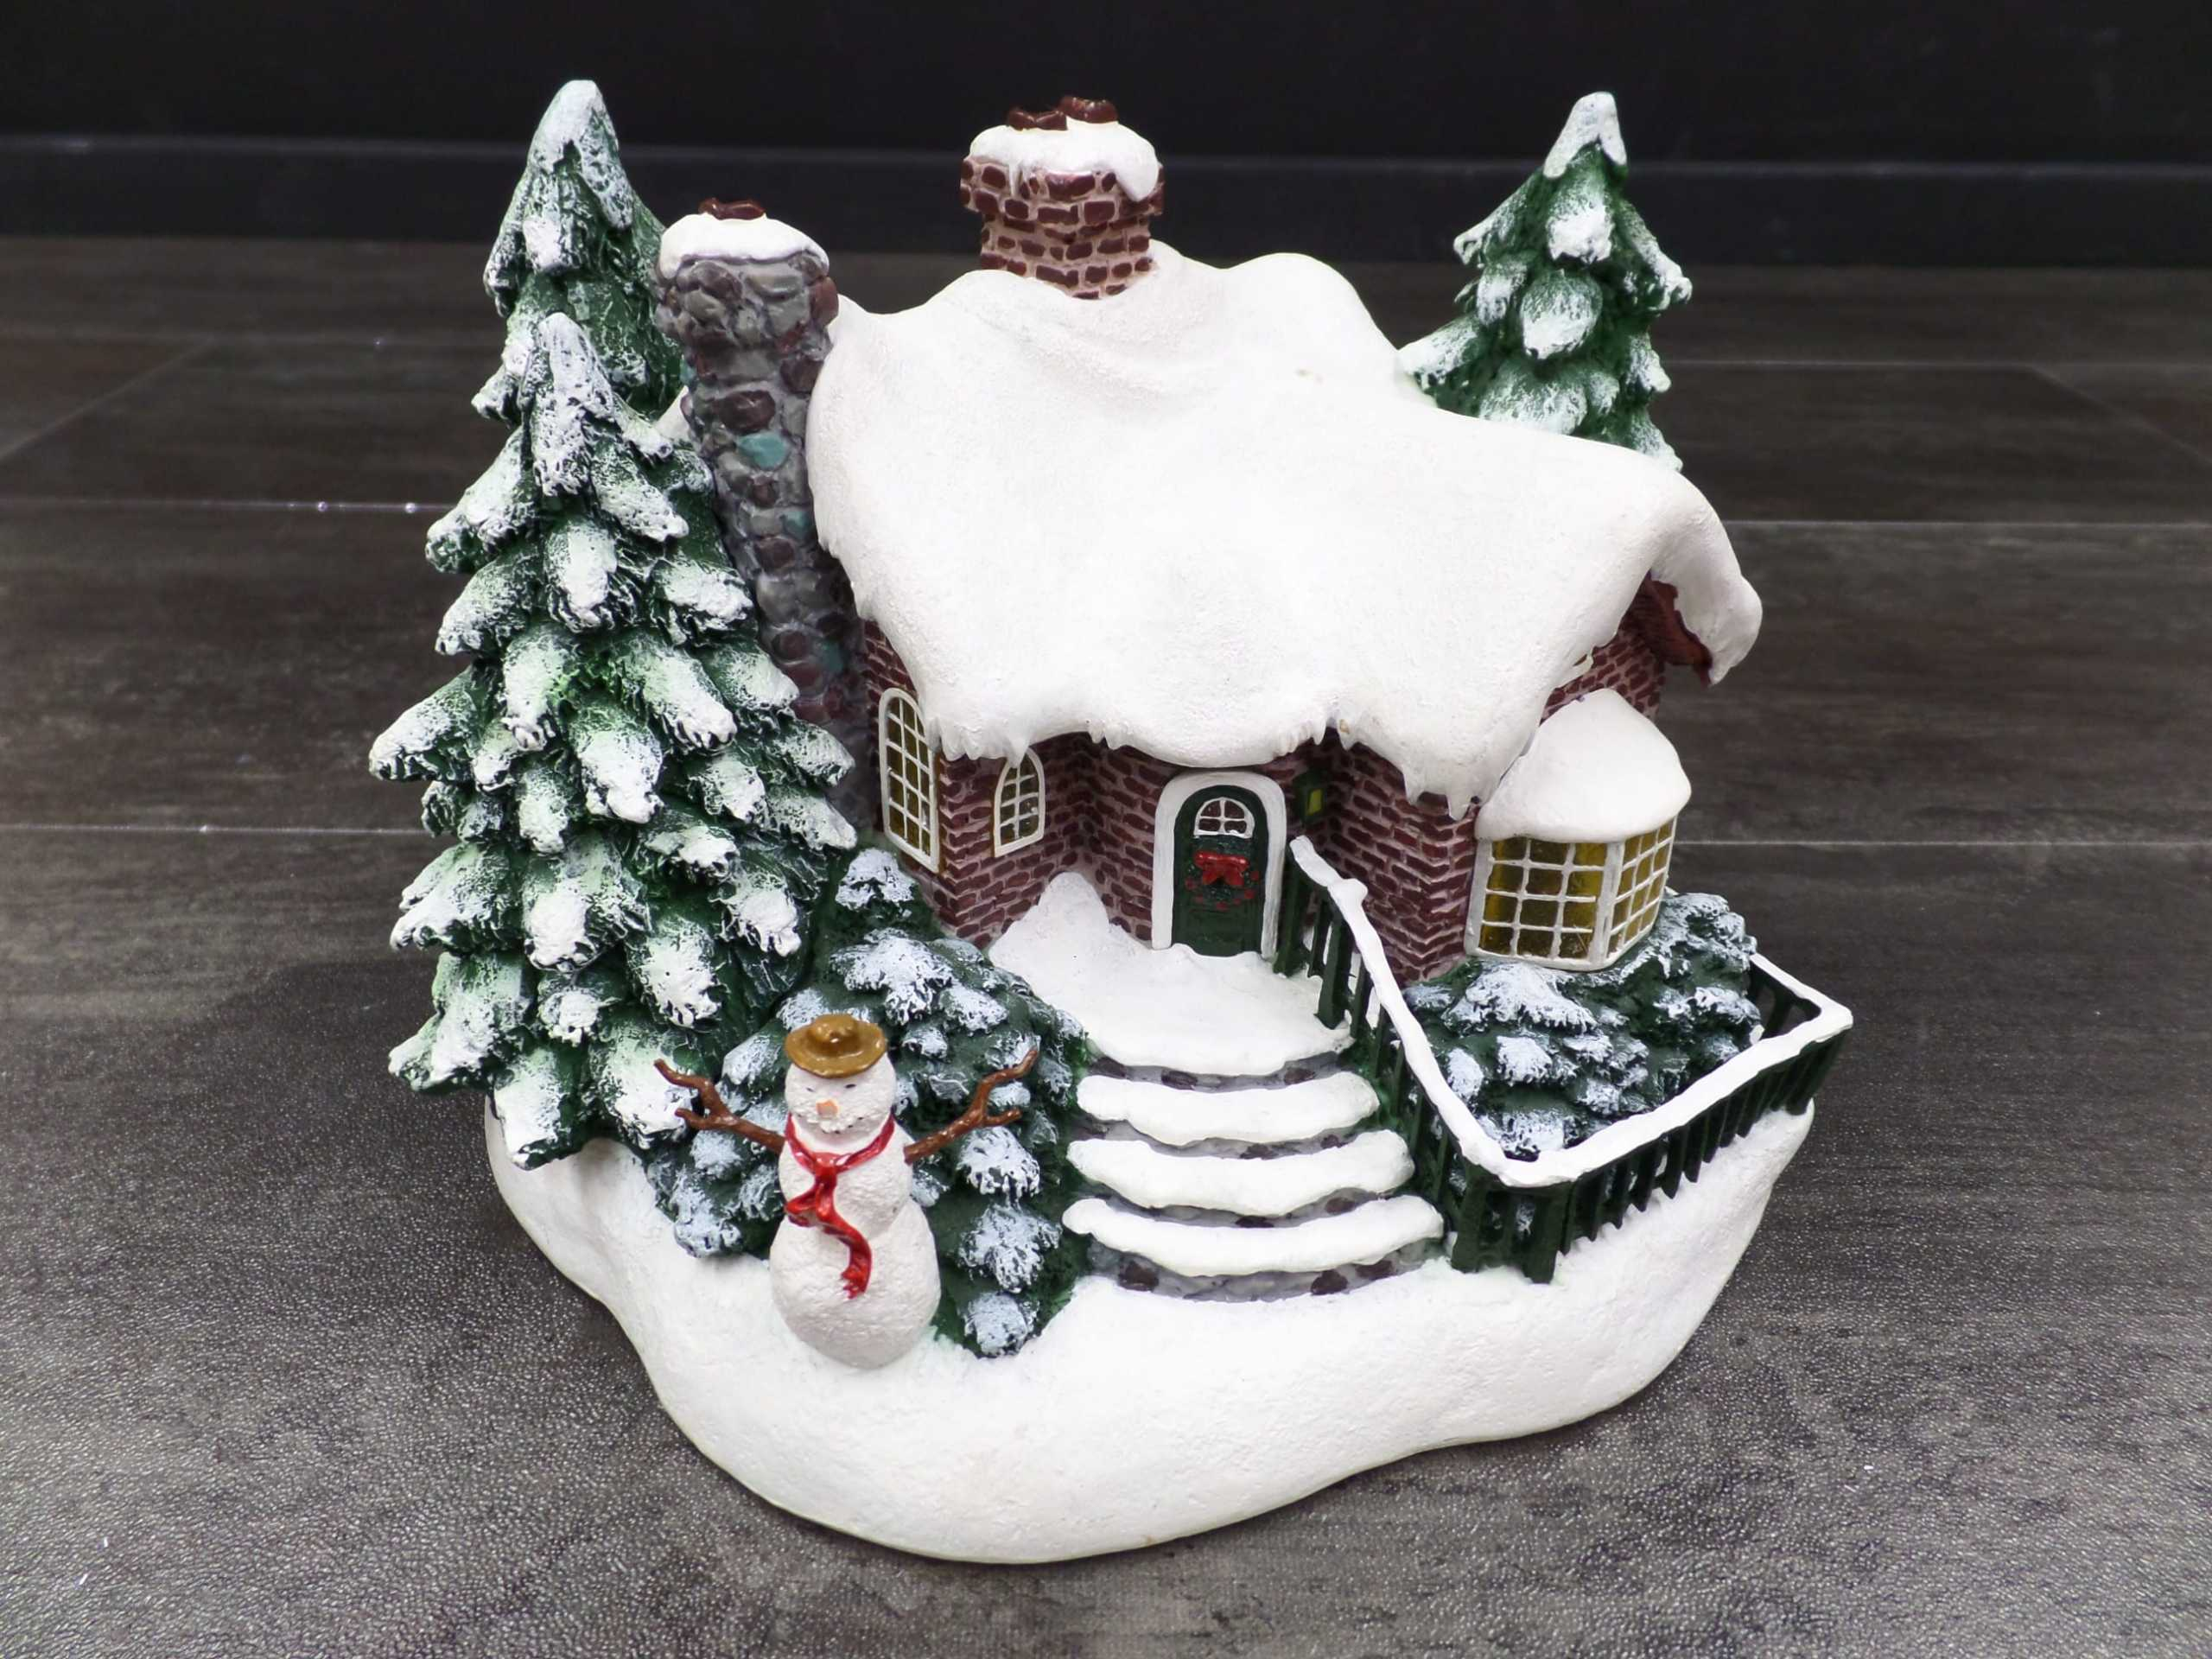 2002 THOMAS KINKADE CHRISTMAS VILLAGE HOUSE <br/> Donated by: WPBS SUPPORTER <br/> Valued at: $16 <br/> Buy It Now: $11